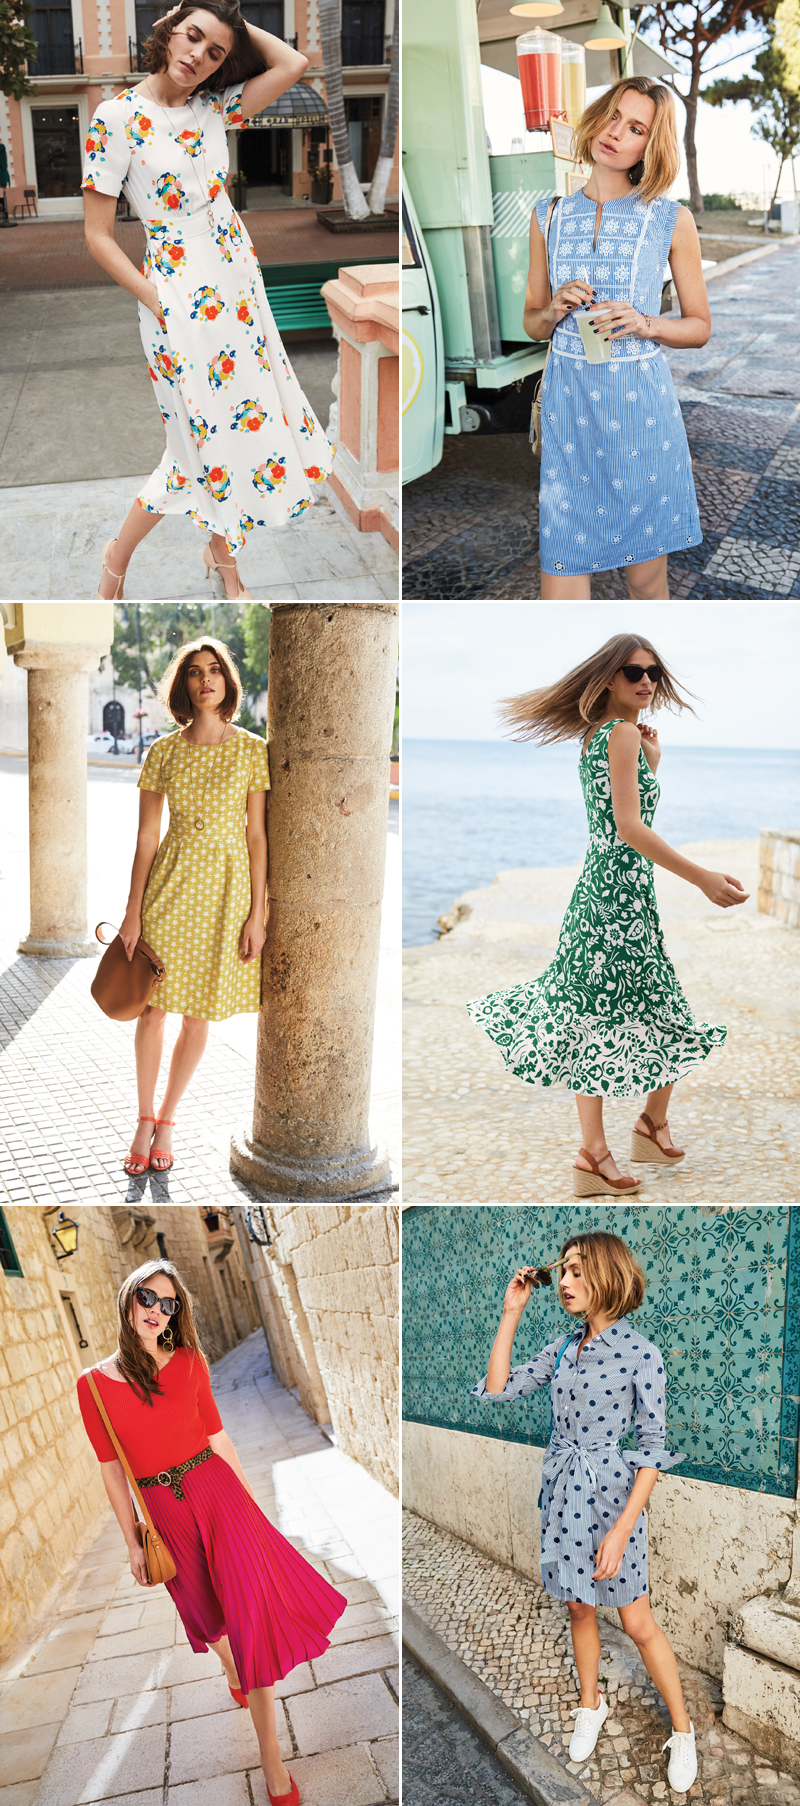 Go Retro! 28 Beautiful Outfit Ideas for Vintage-Inspired